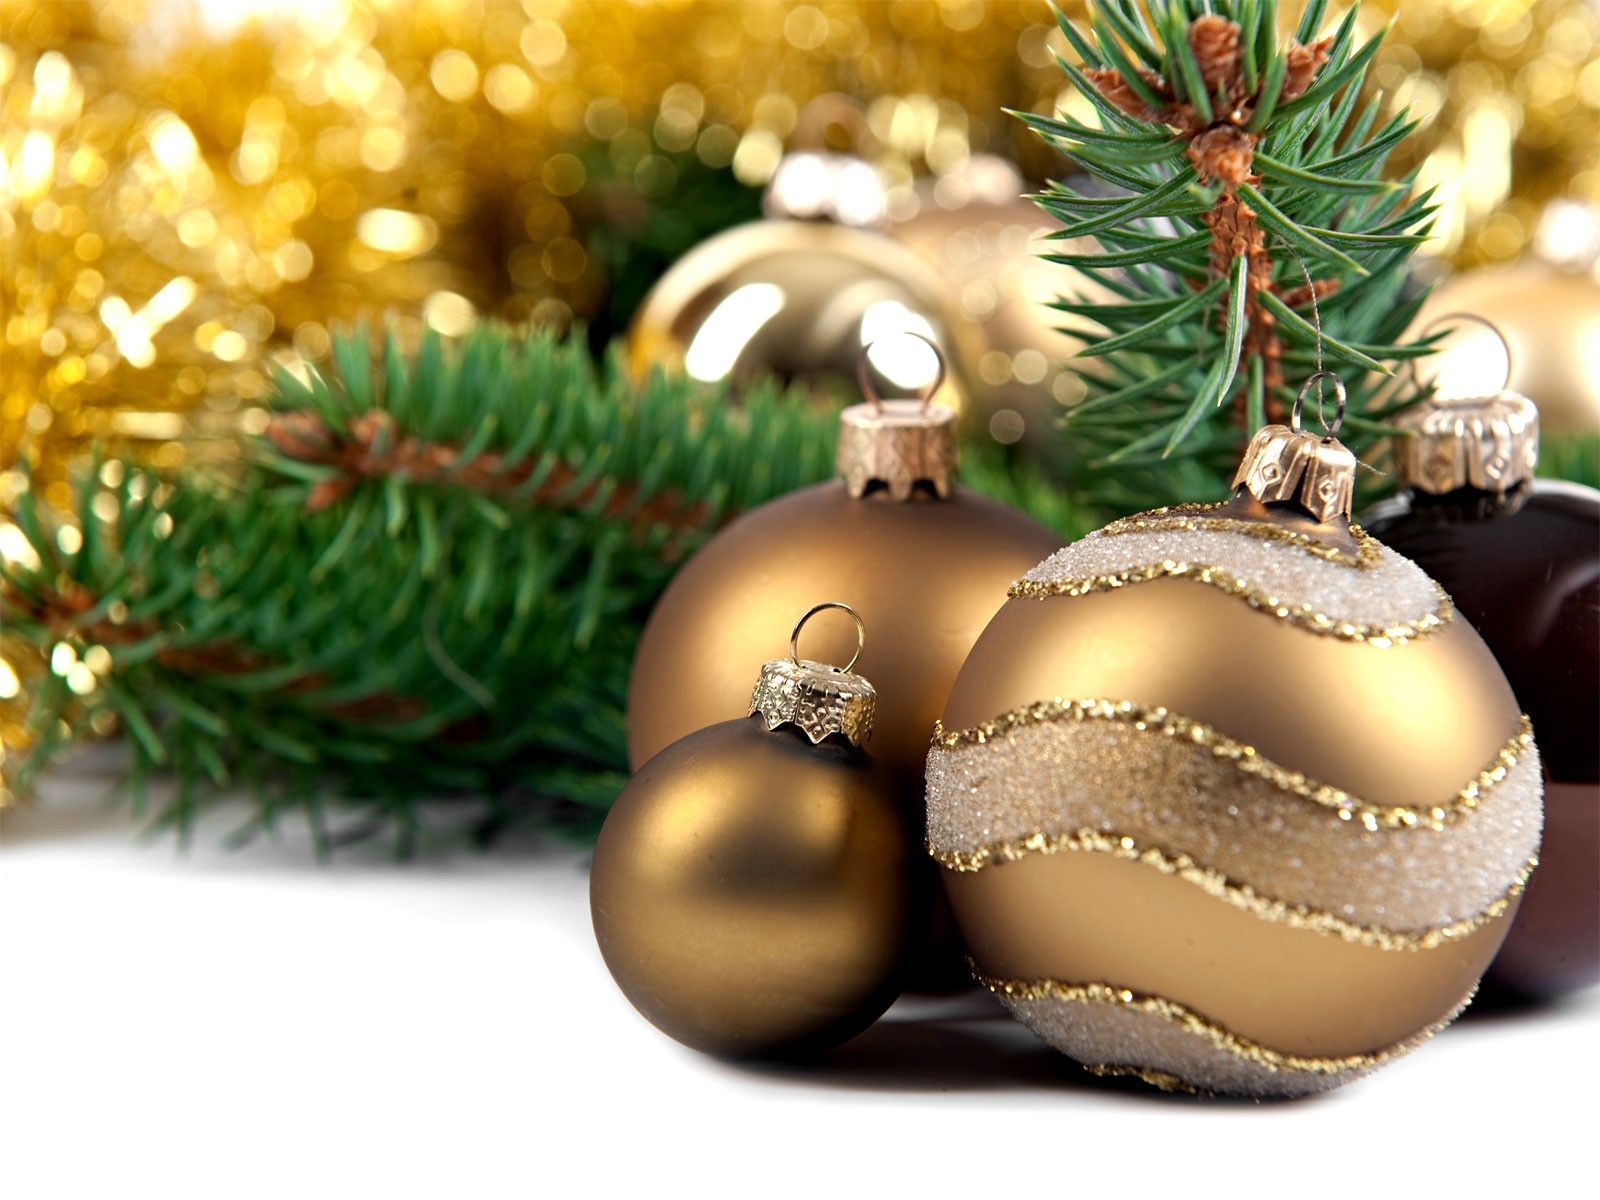 merry christmas jingle bells wallpapers - Merry Christmas Jingle Bells HD Wallpapers